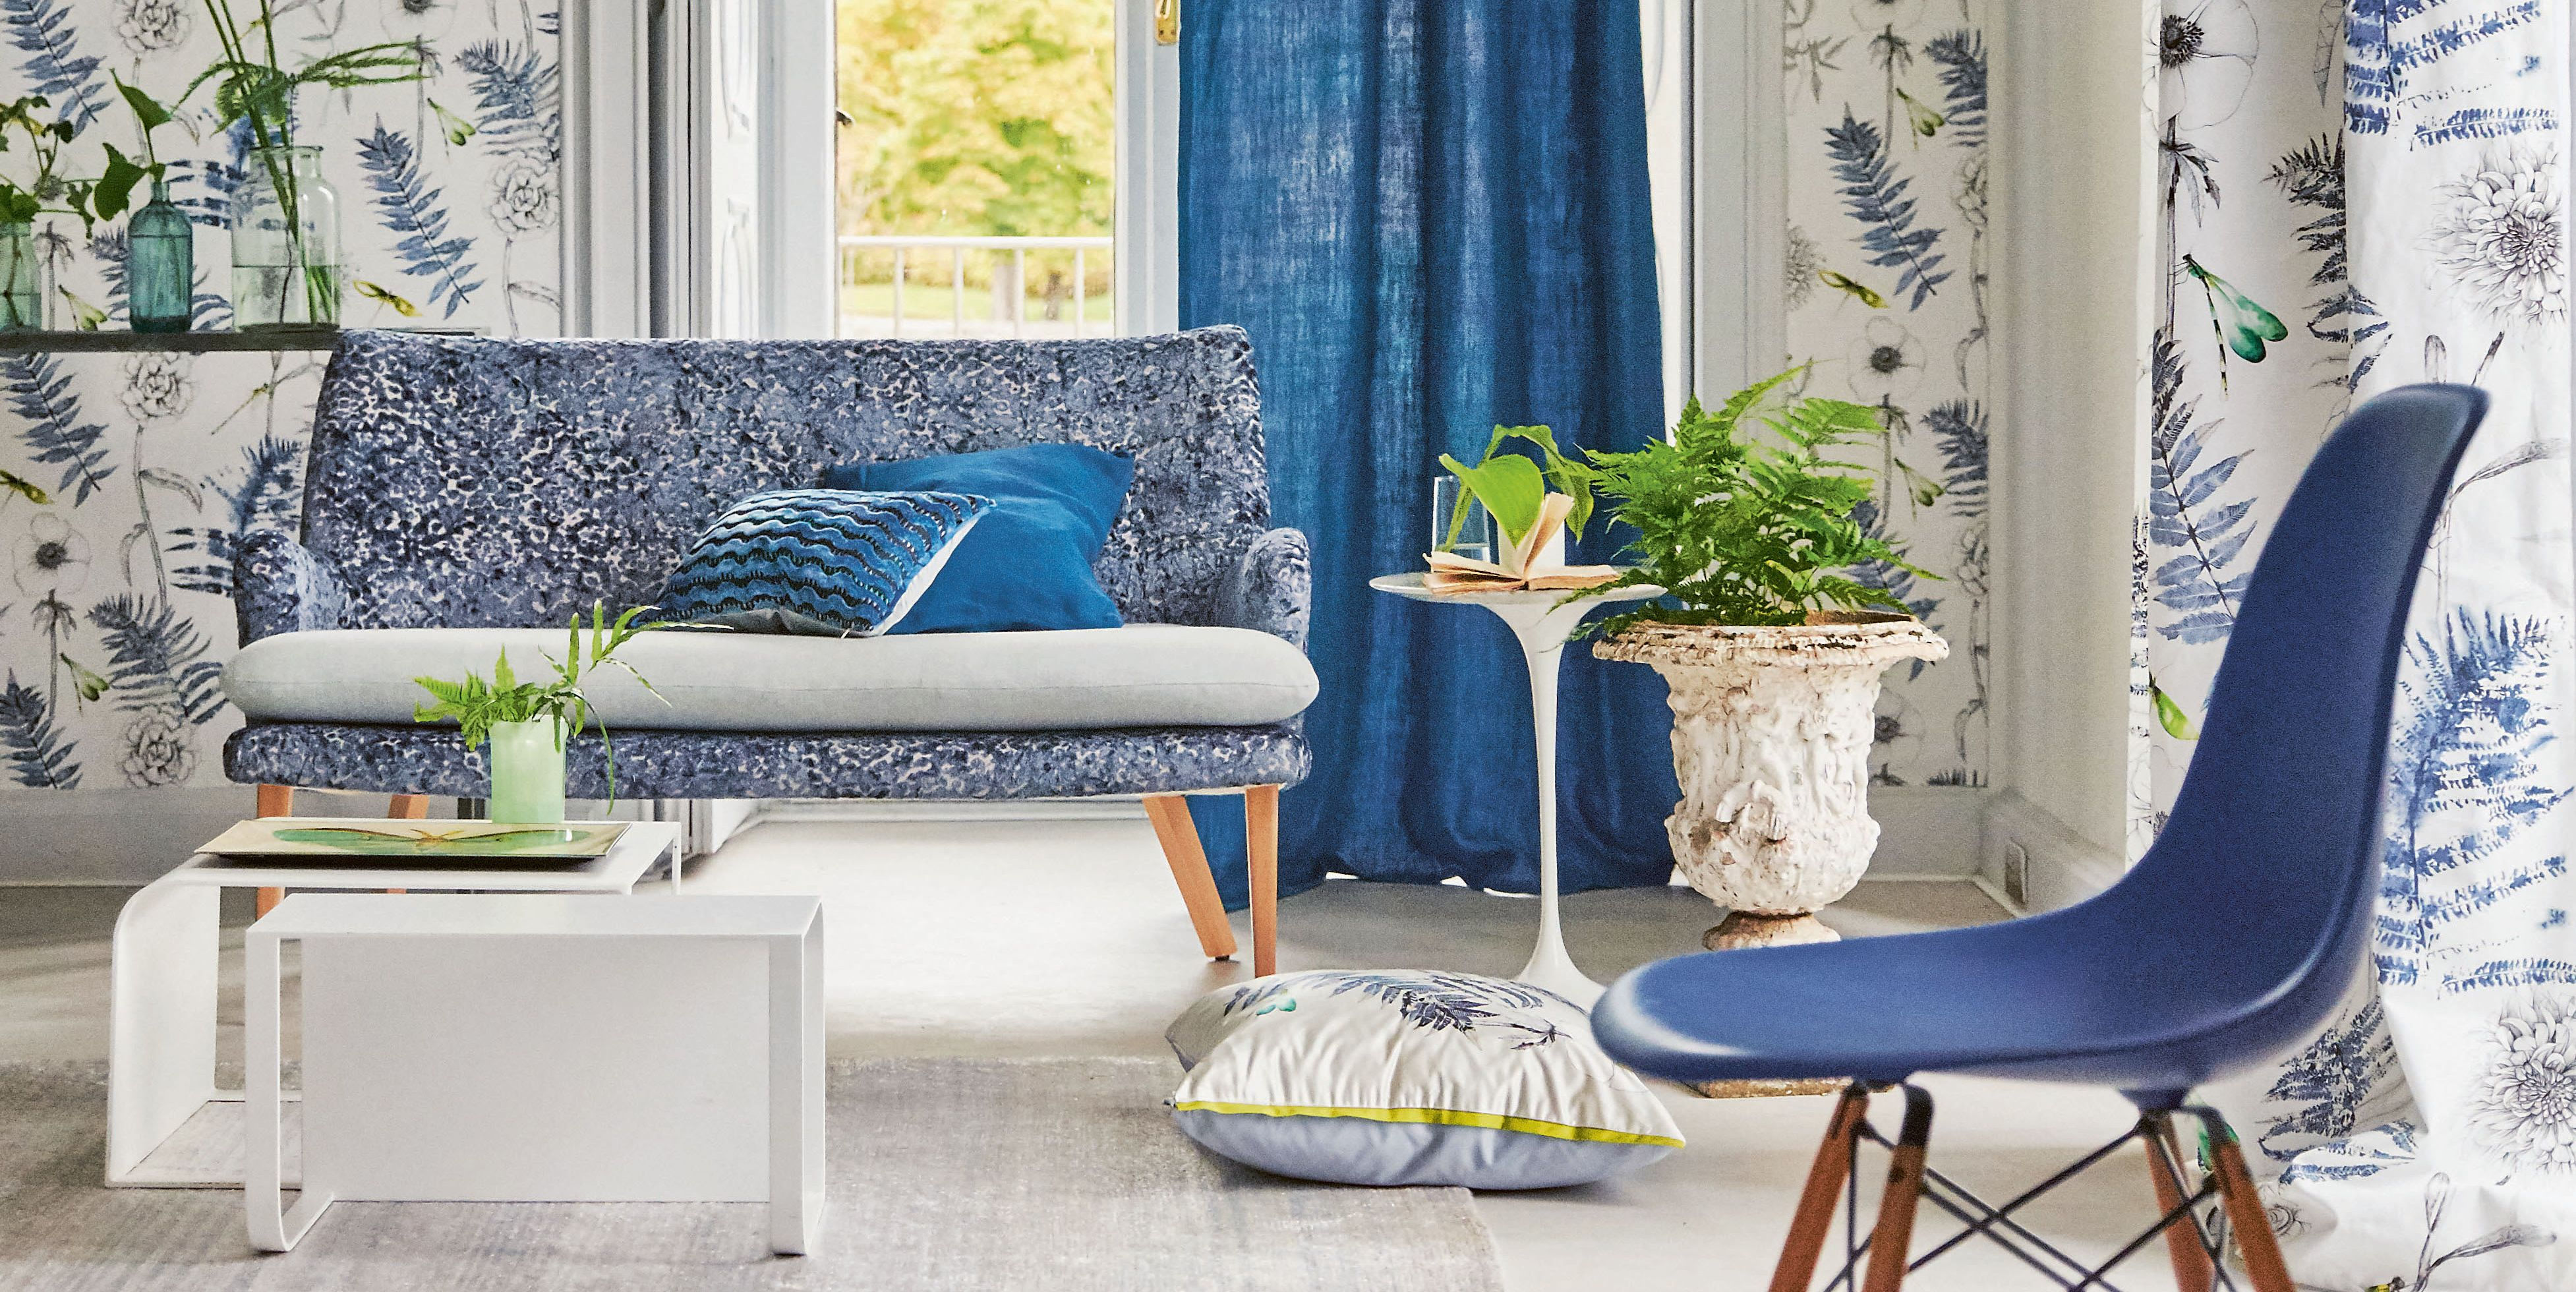 7 Color Palettes To Try From Interior Designer Tricia Guild's Chic Paint Book